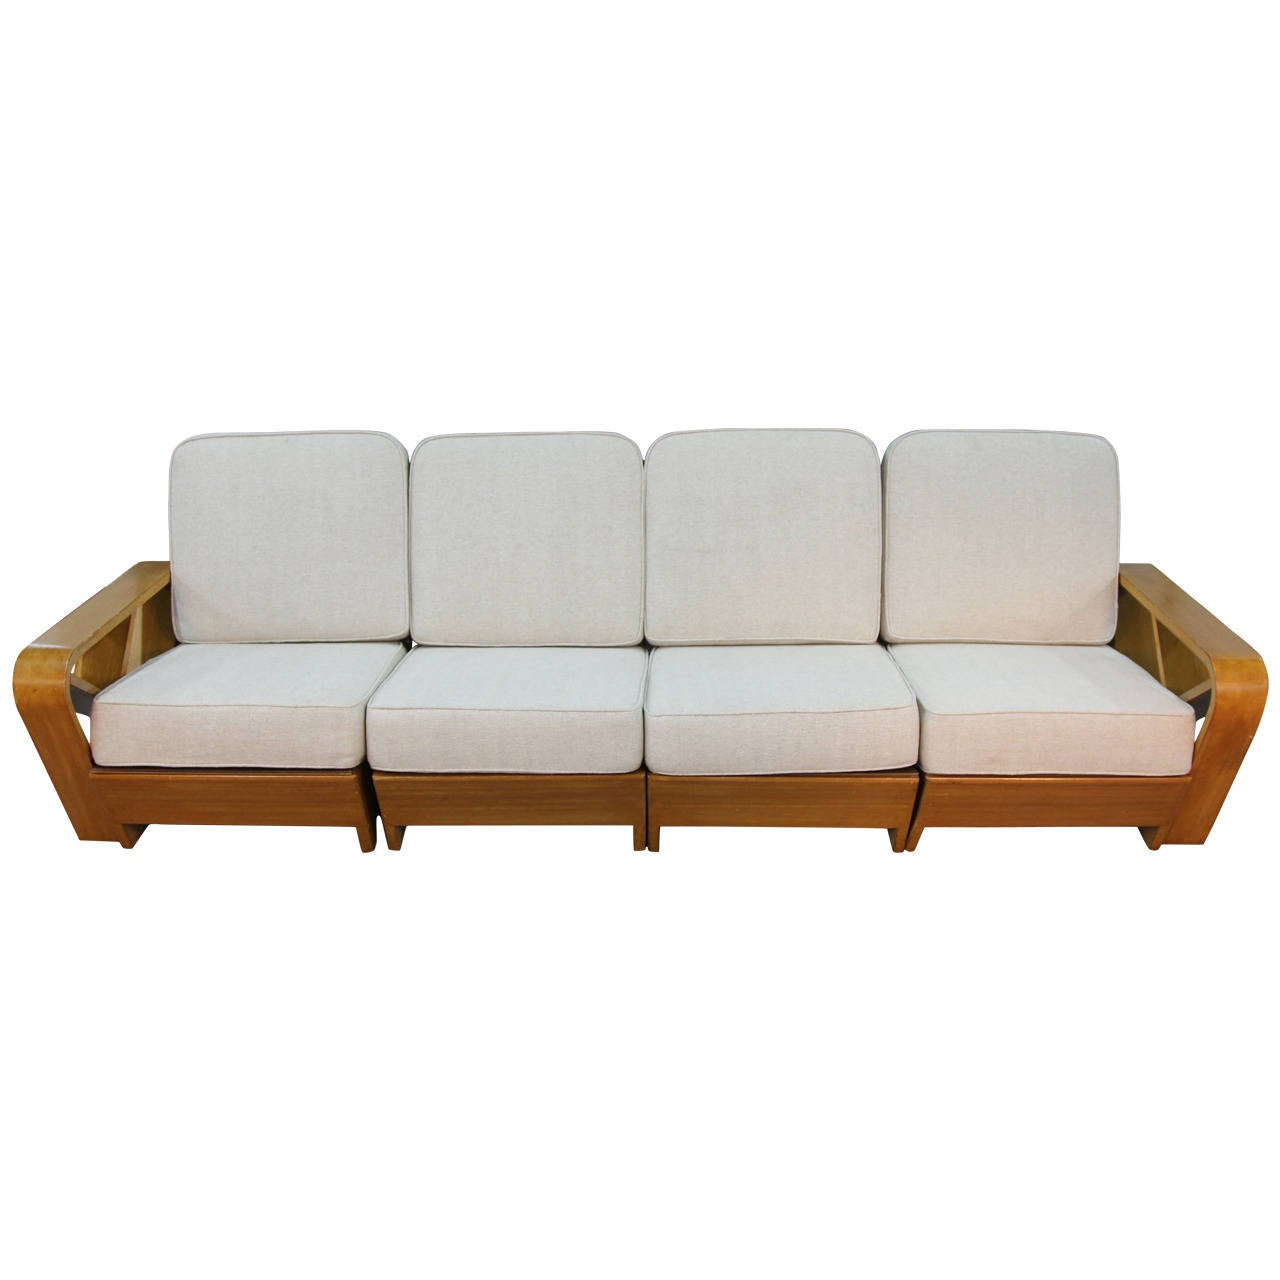 Four Piece Wood Frame Sofa In Manner Of Paul Frankl At 1stdibs